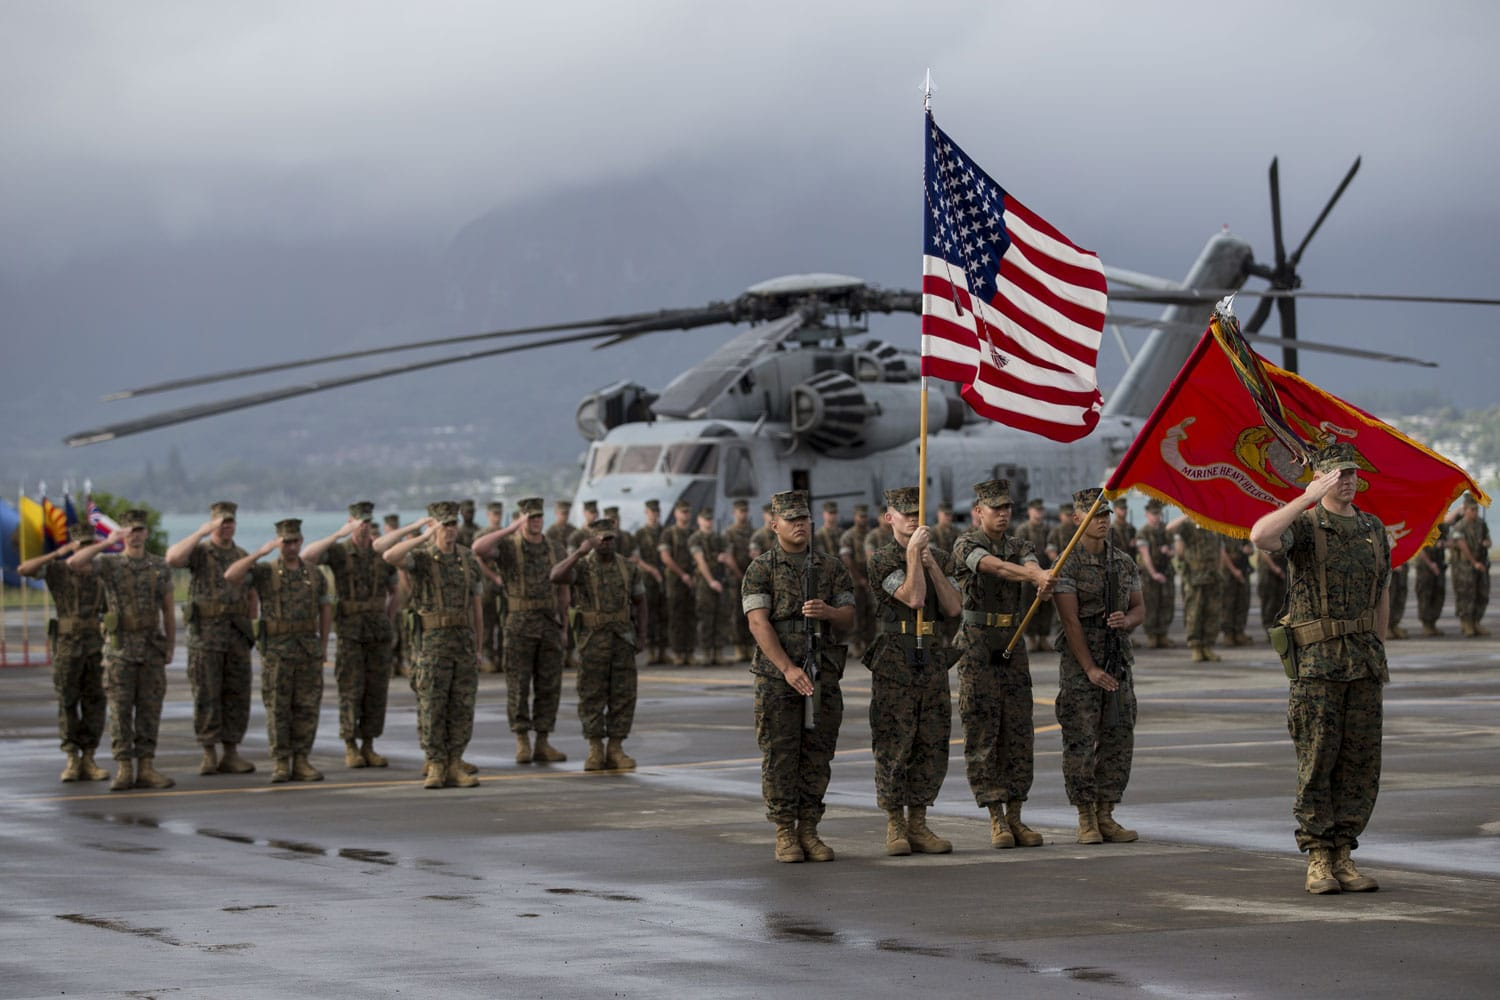 United States Marines Lt. Col. Eric D. Purcell relinquished command of the squadron to Lt. Col. Kevin G. Hunter during the ceremony.